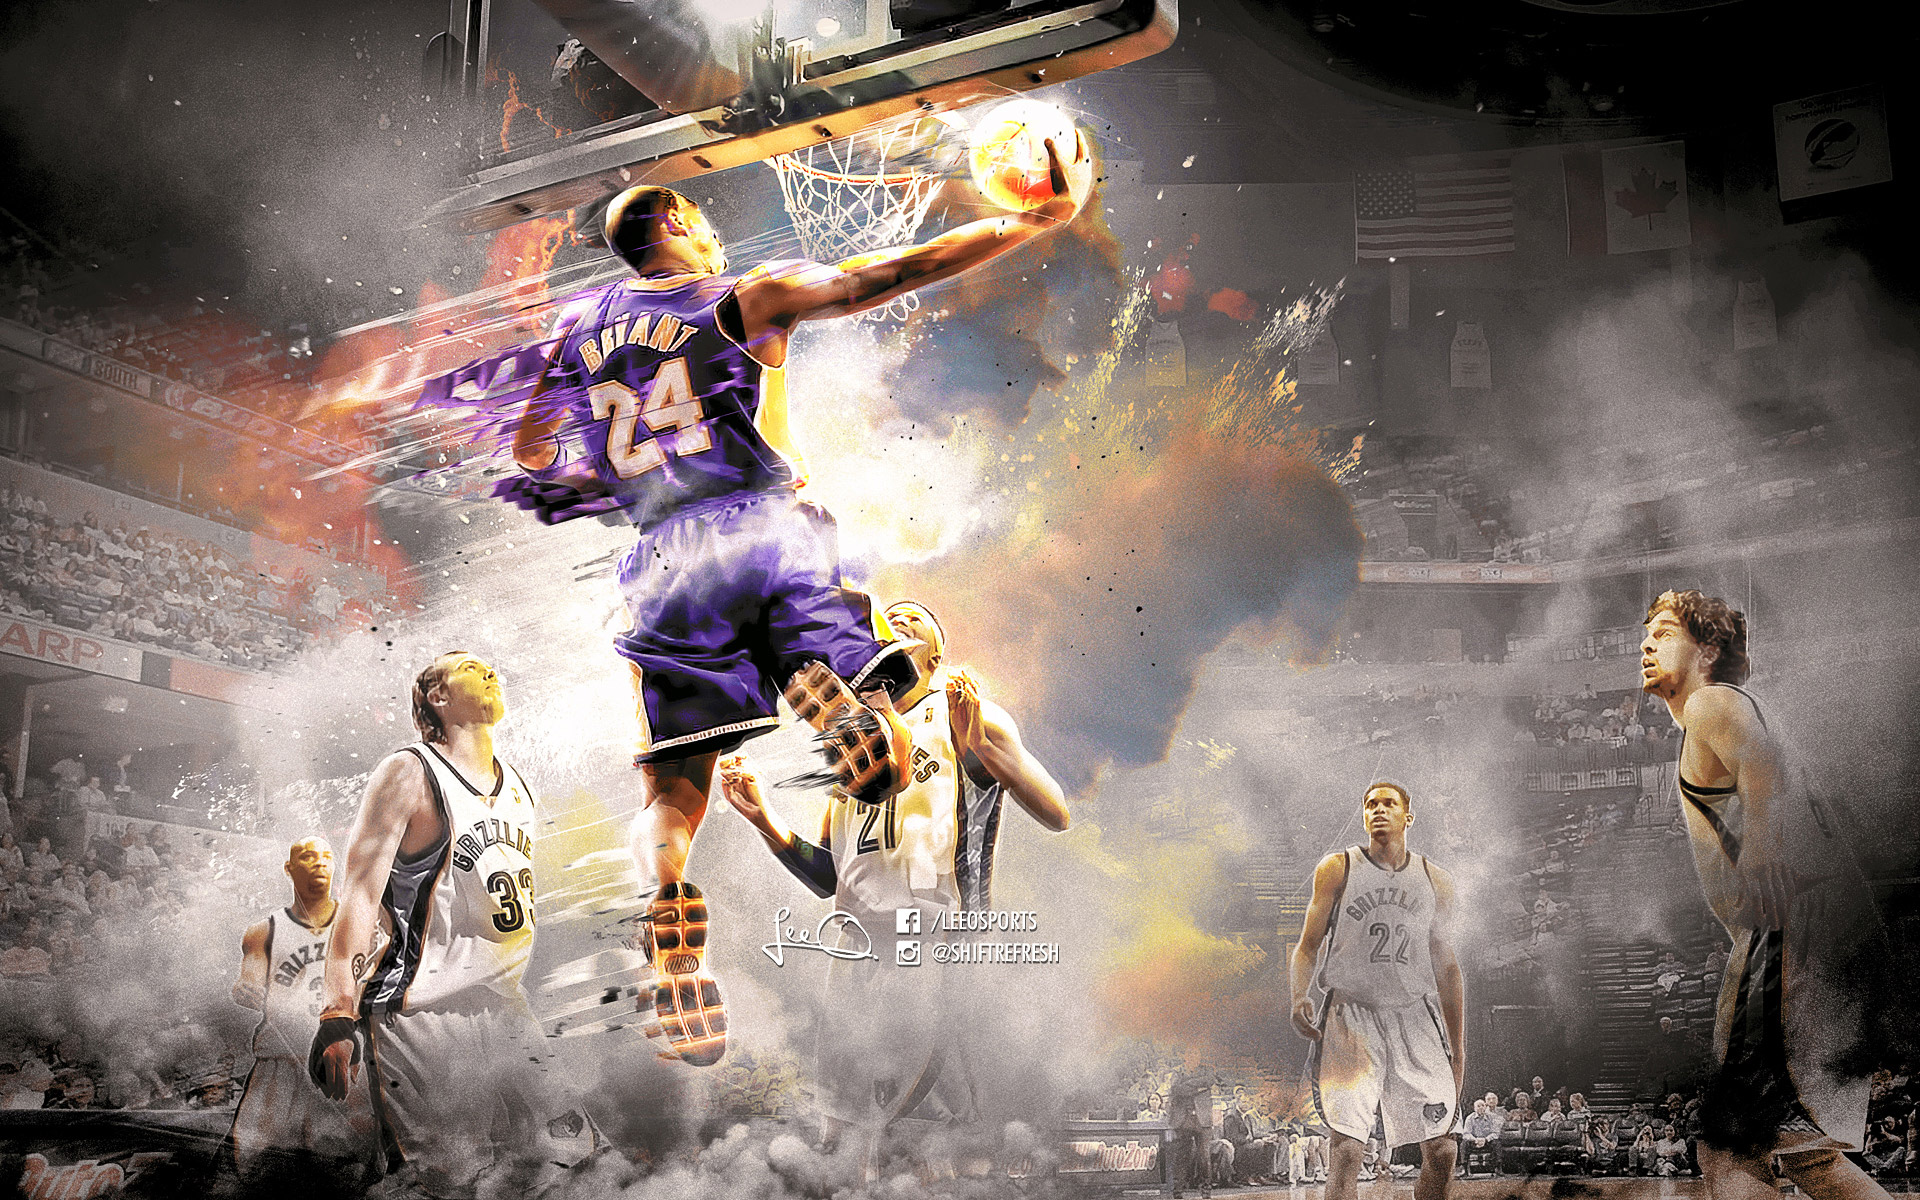 Kobe Bryant 2016 Grizzlies 1920x1200 Wallpaper